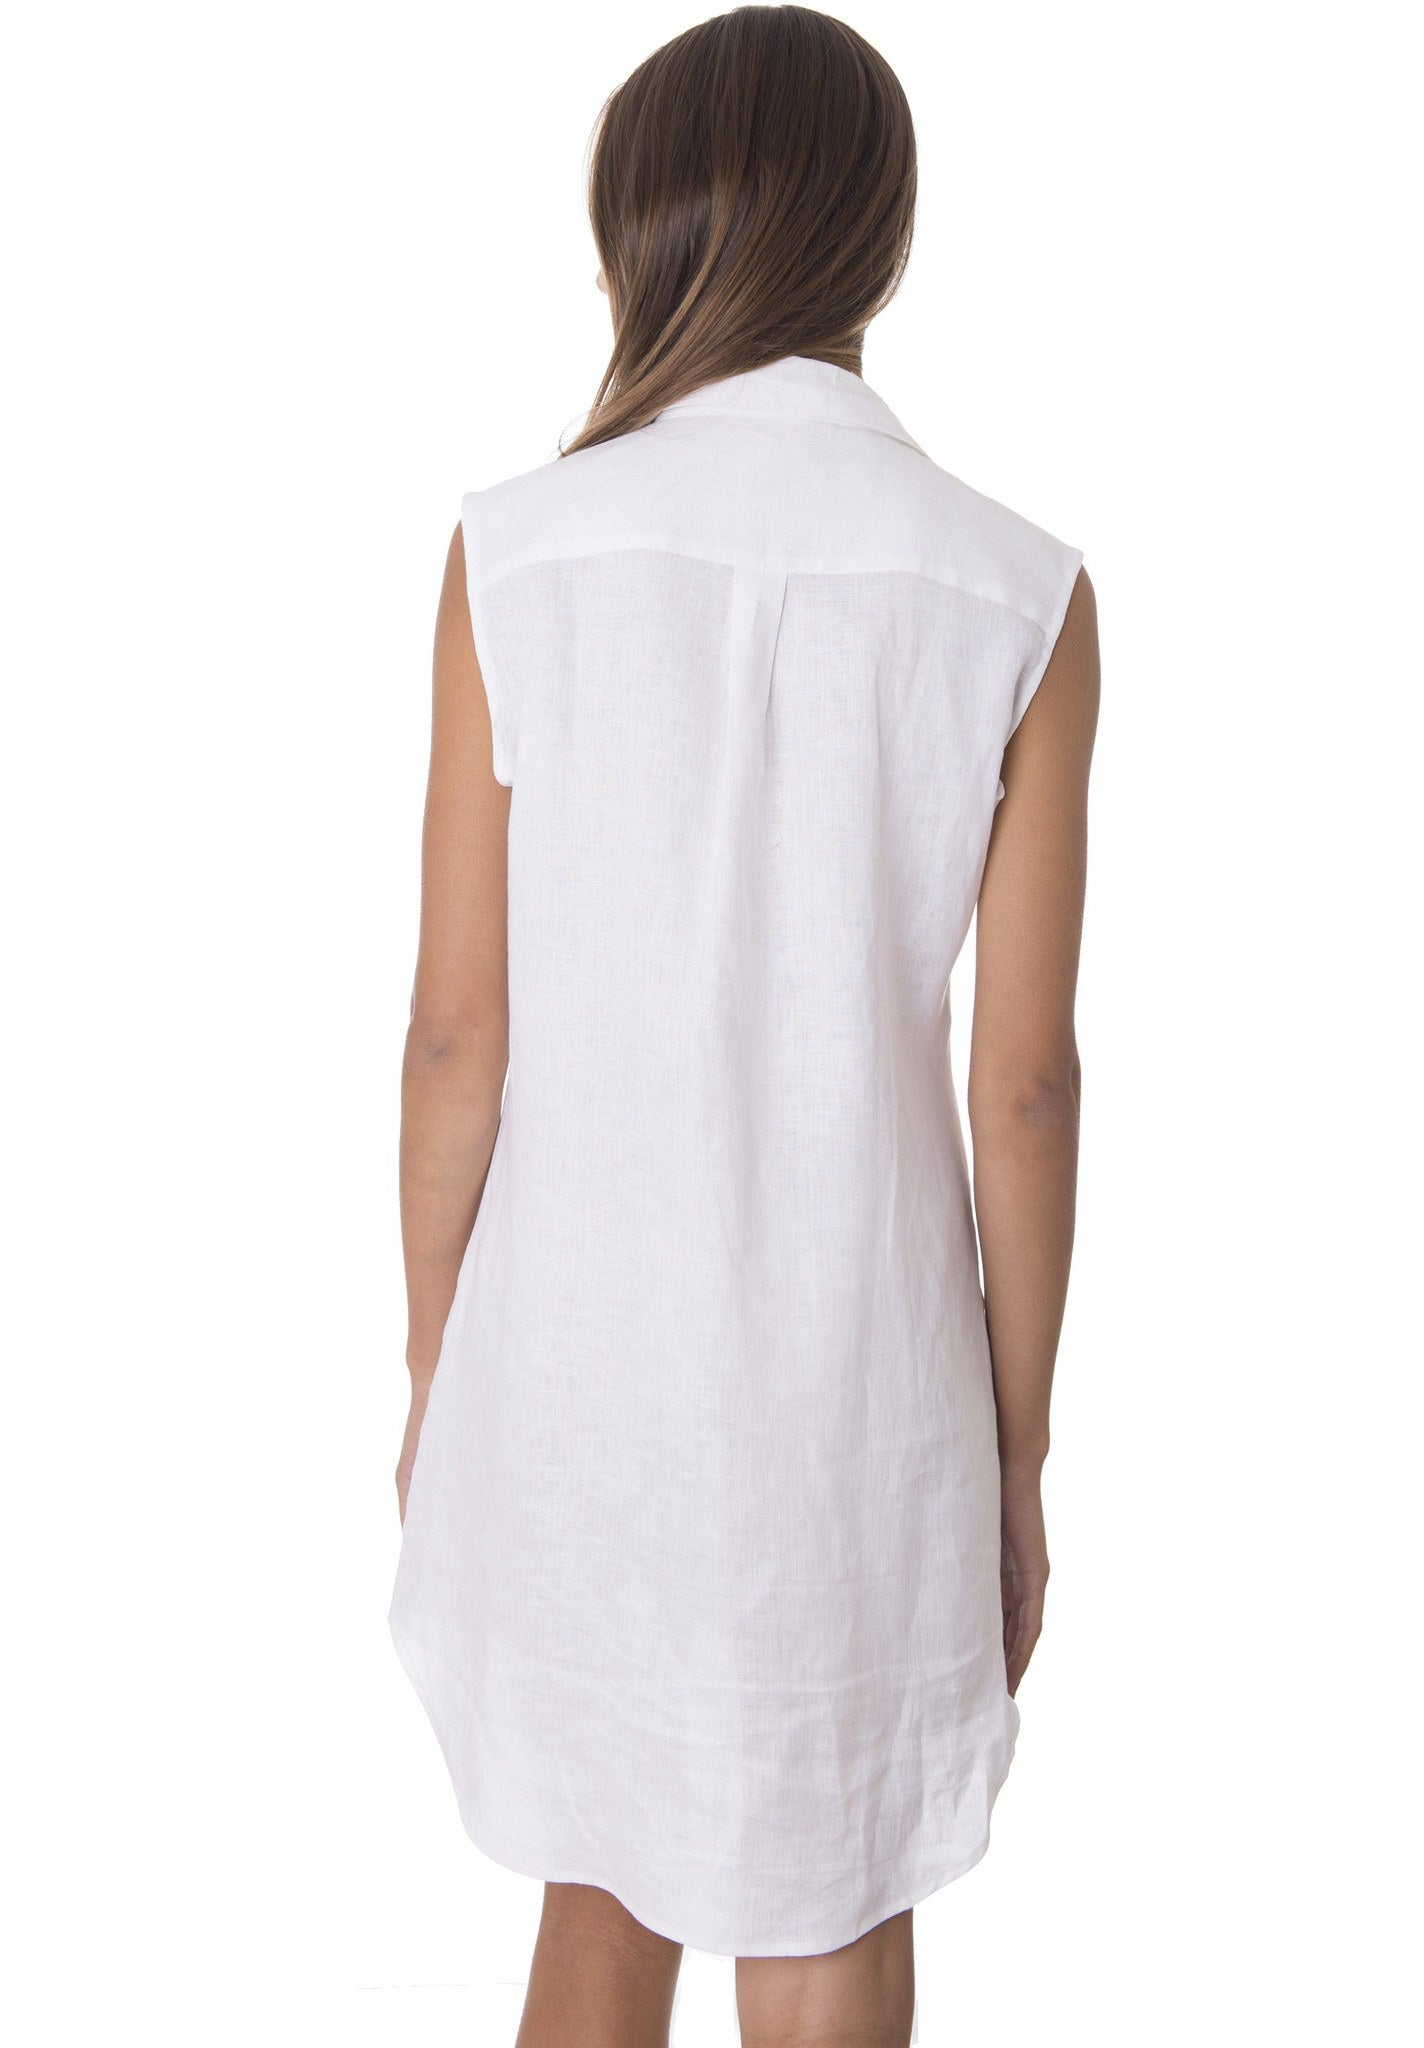 Bia White, Sleeveless Summer Shirt-dress